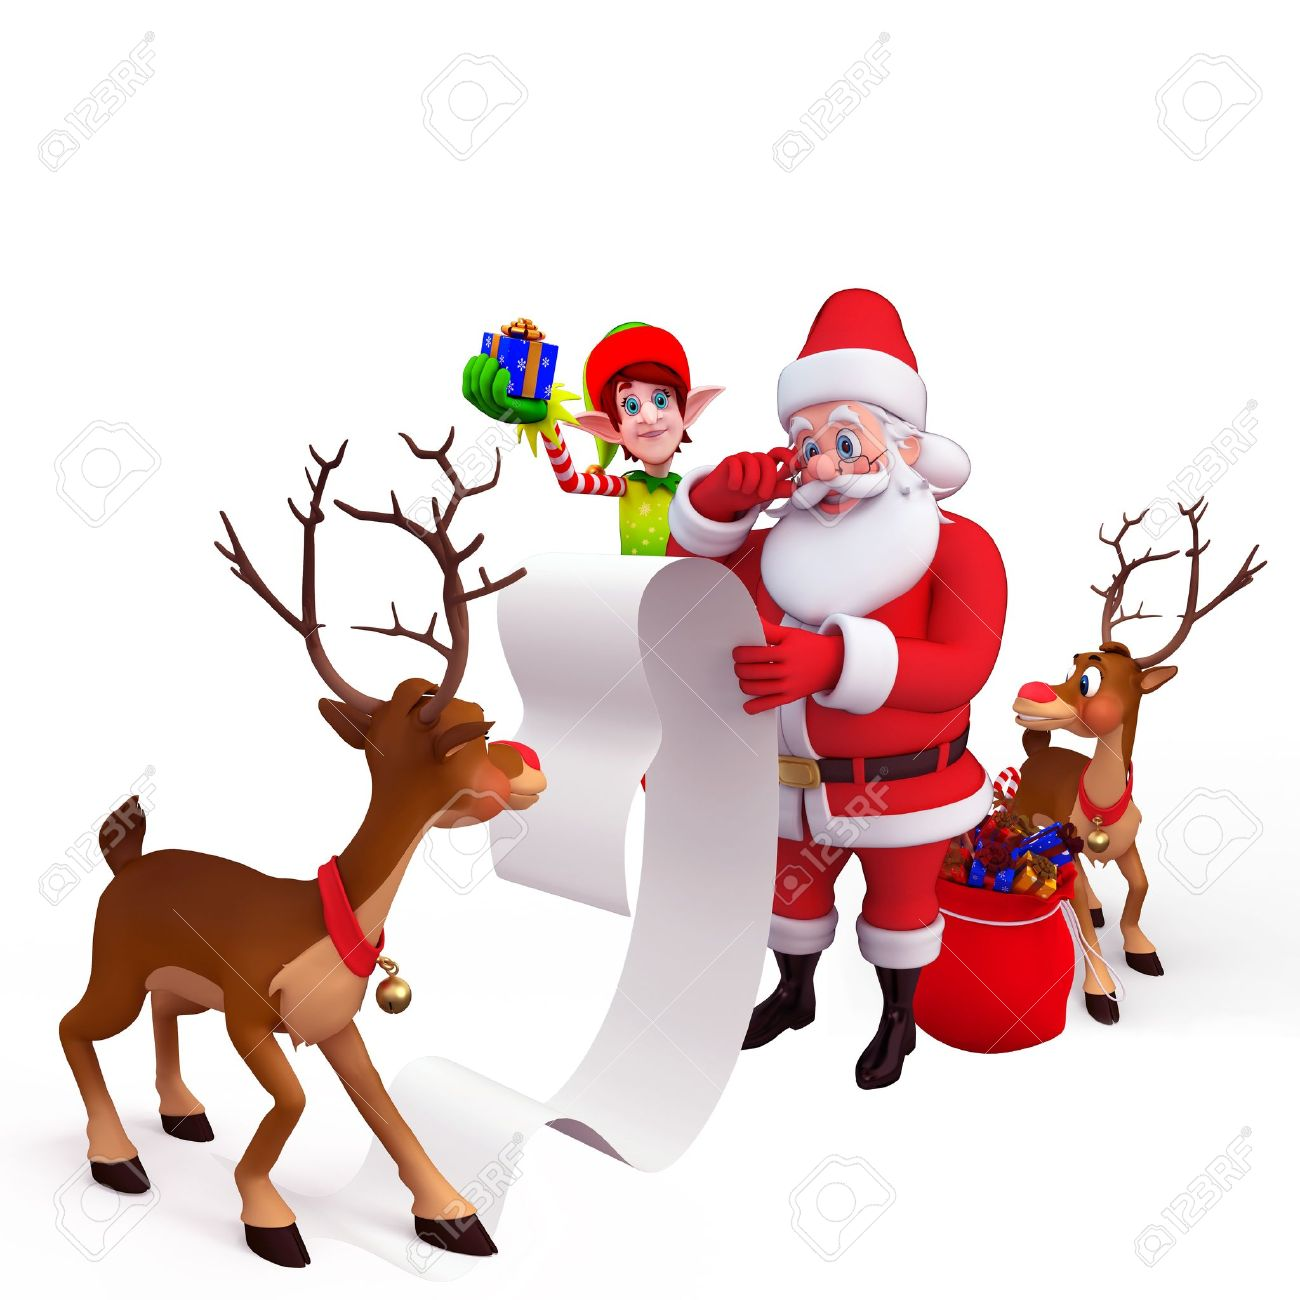 Image result for santa and reindeer images